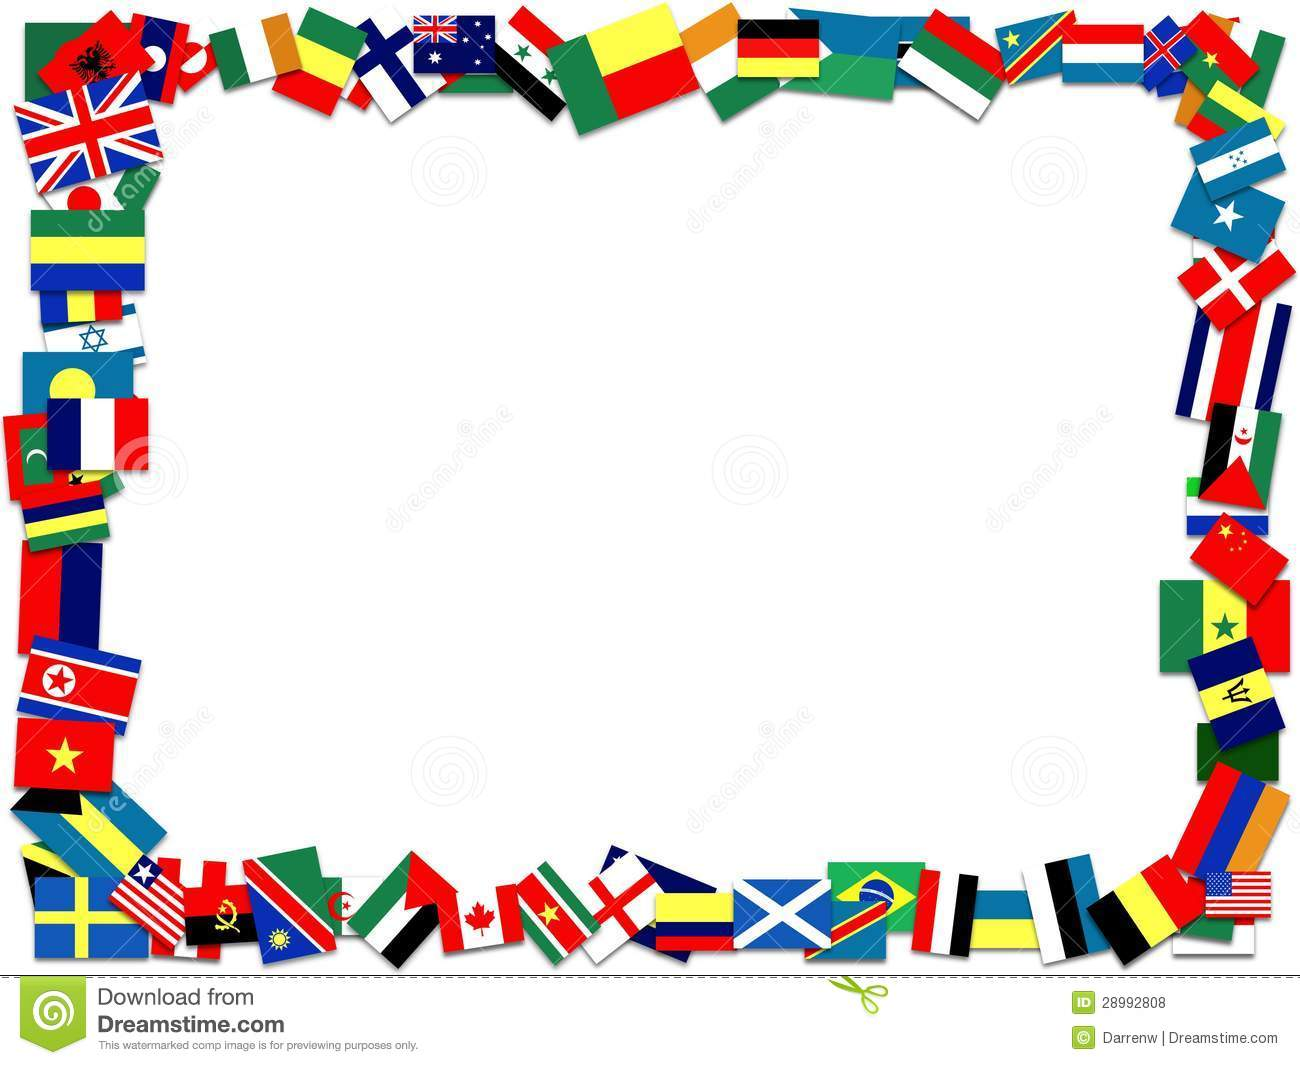 Illustration Of A Frame Made Of Many Fla-Illustration Of A Frame Made Of Many Flags-12